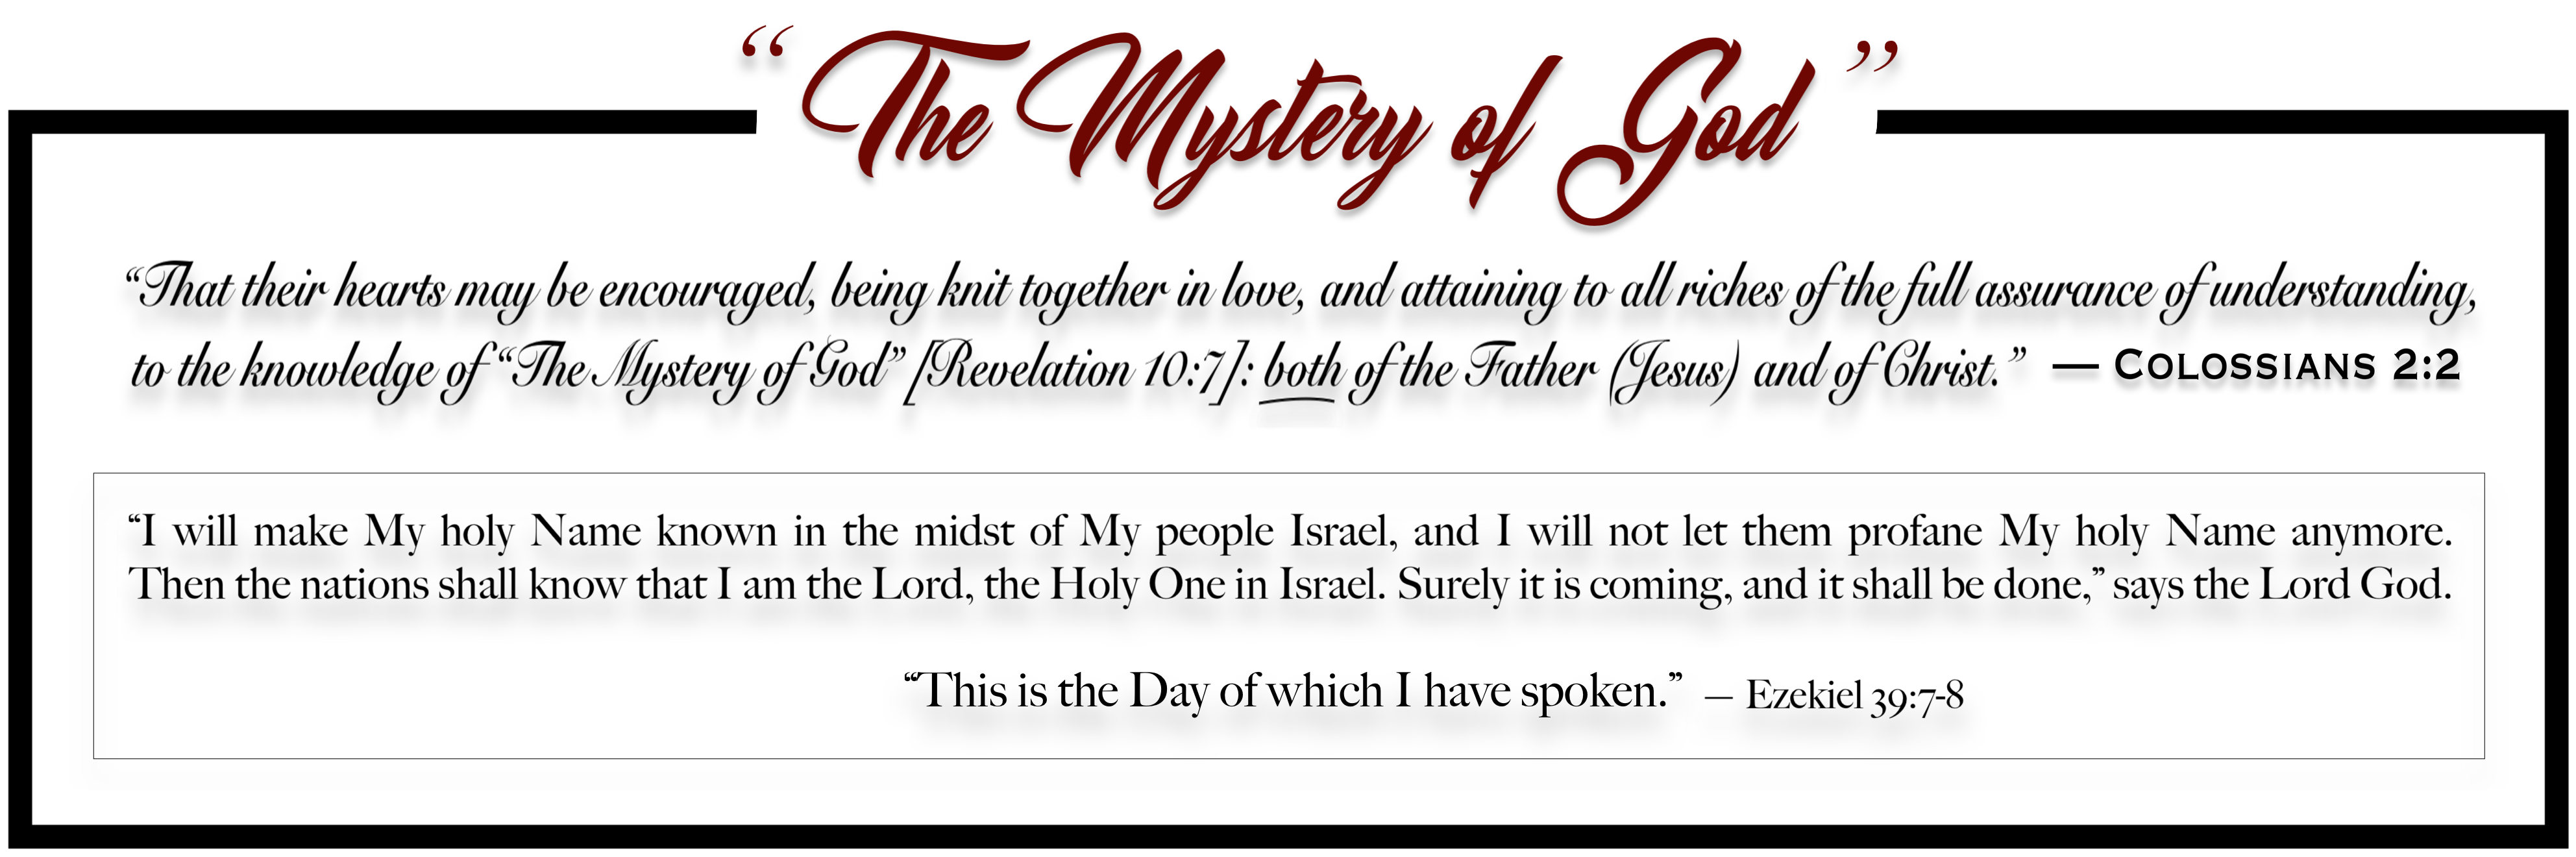 The Mystery of God - Master